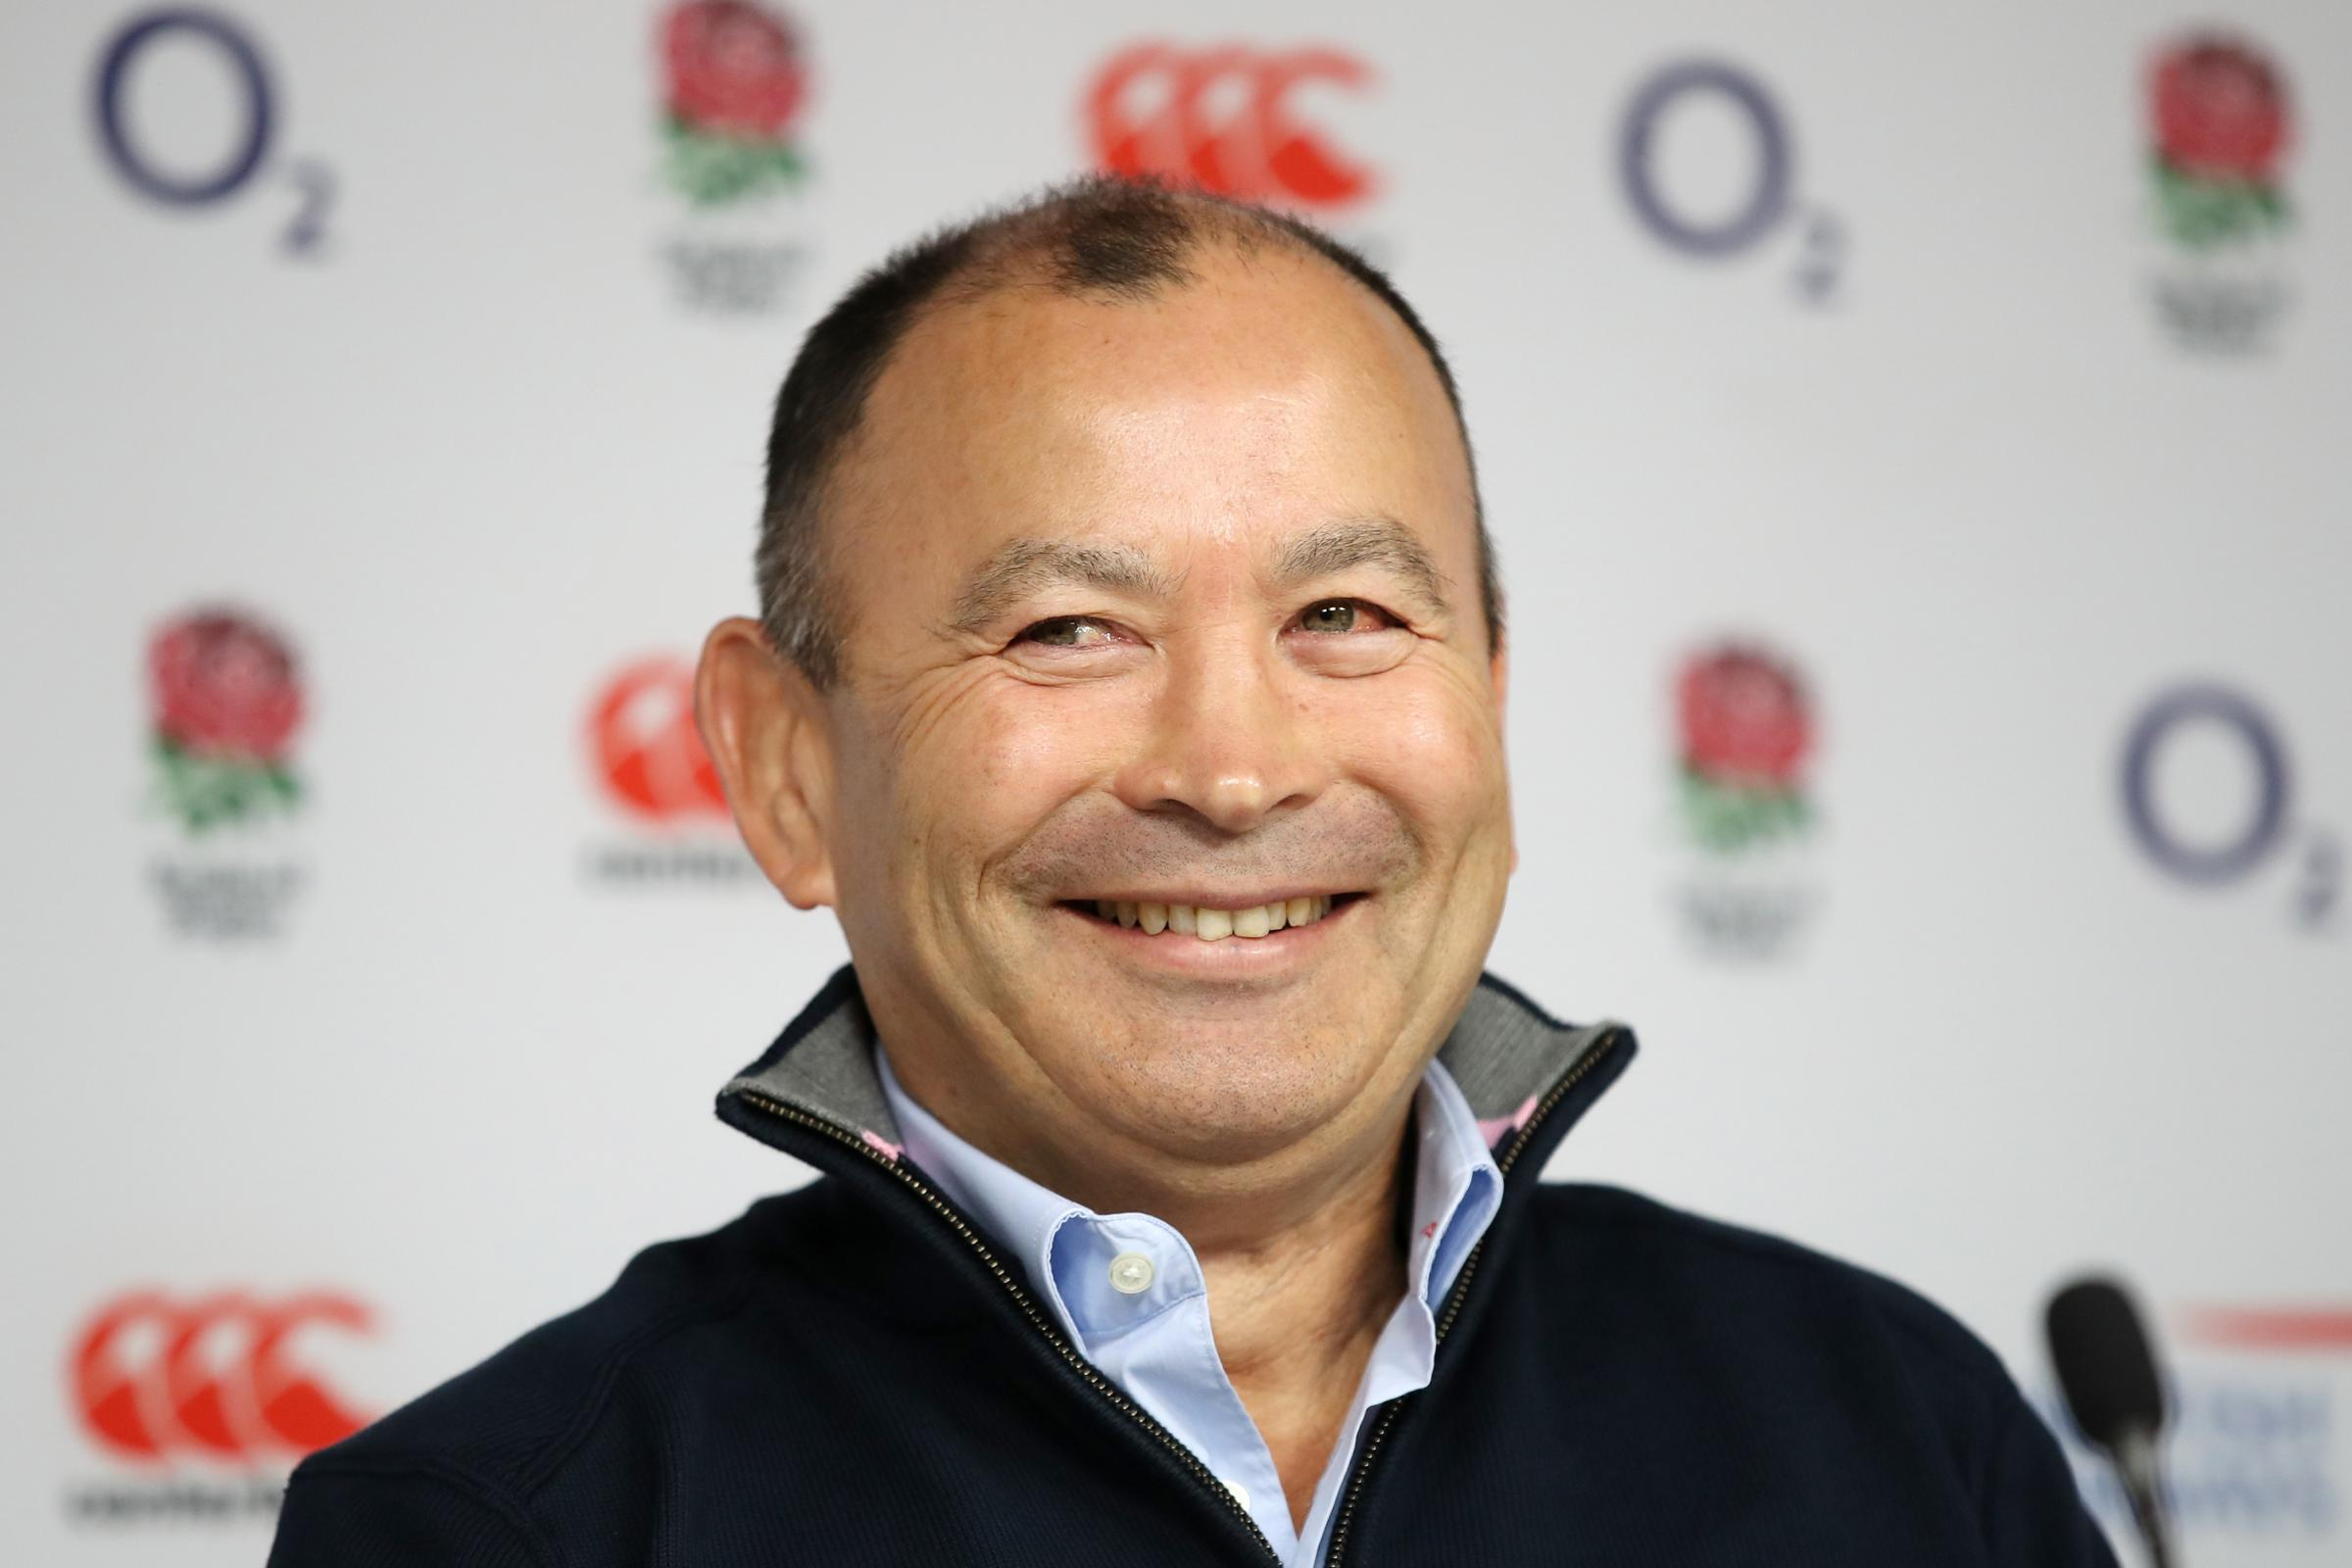 Eddie Jones believes left-field thinking could help England to success